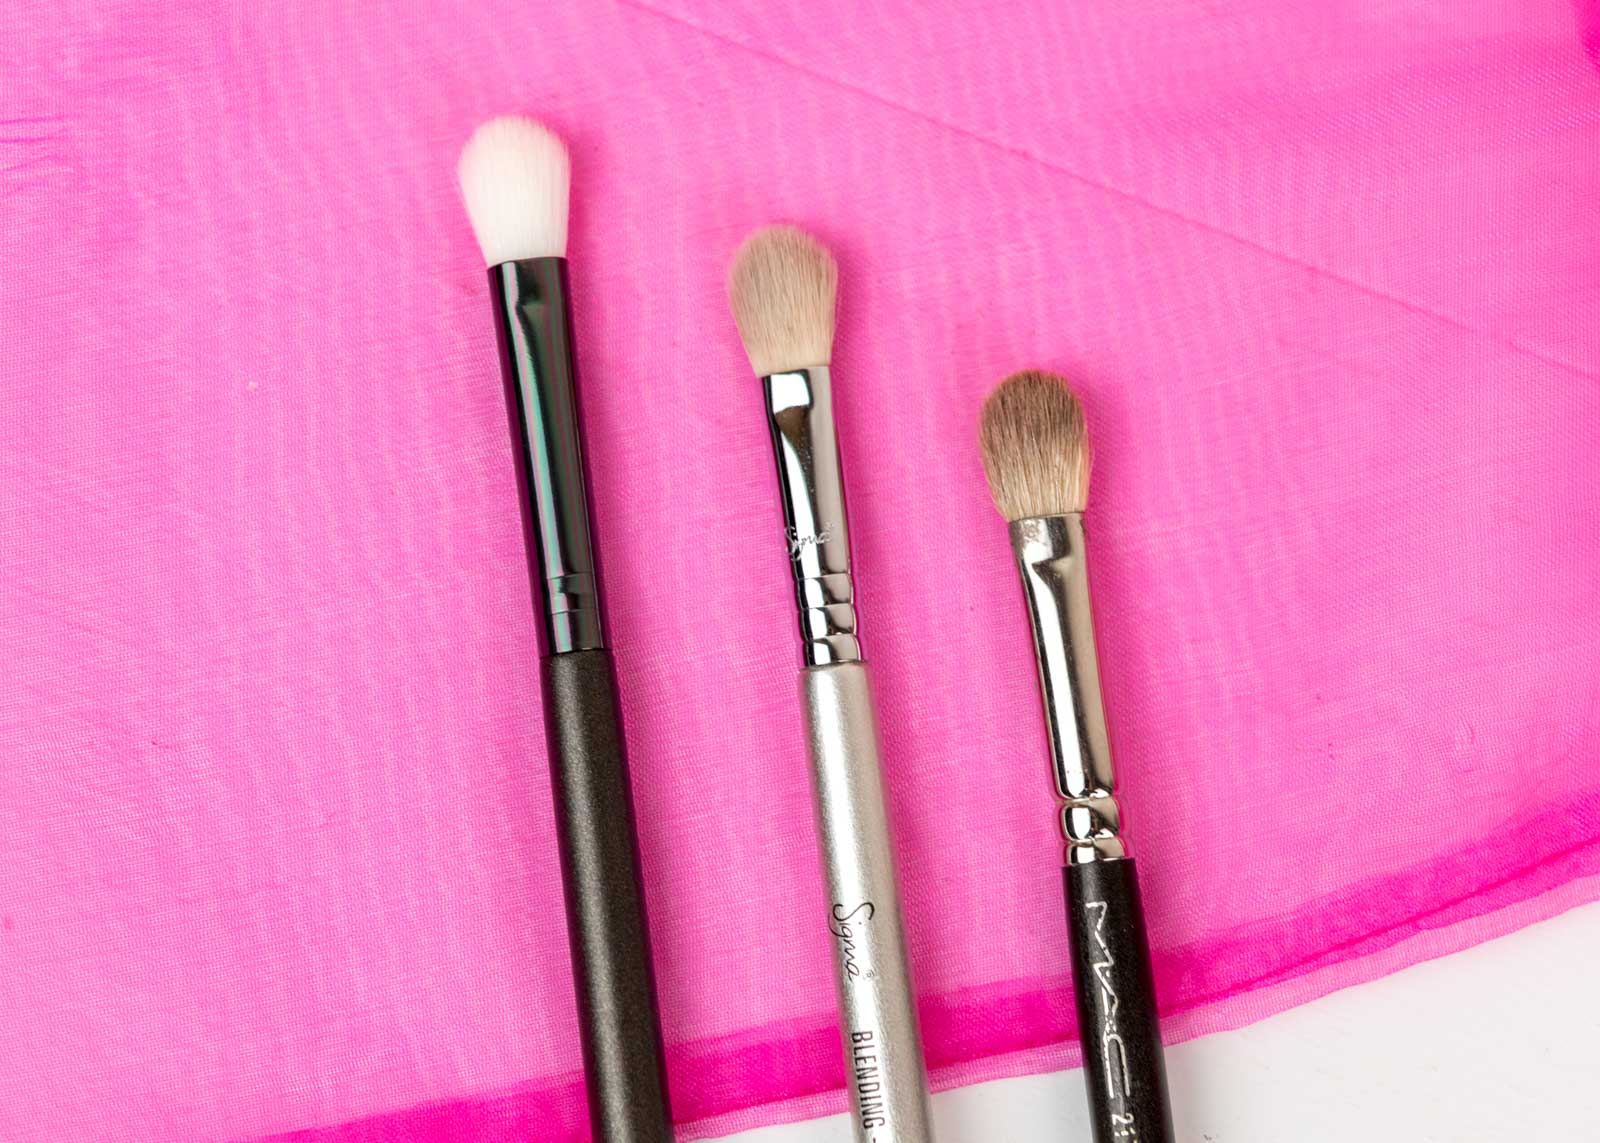 Luxie Beauty Blending Brush compared to MAC 217 and Sigma blending